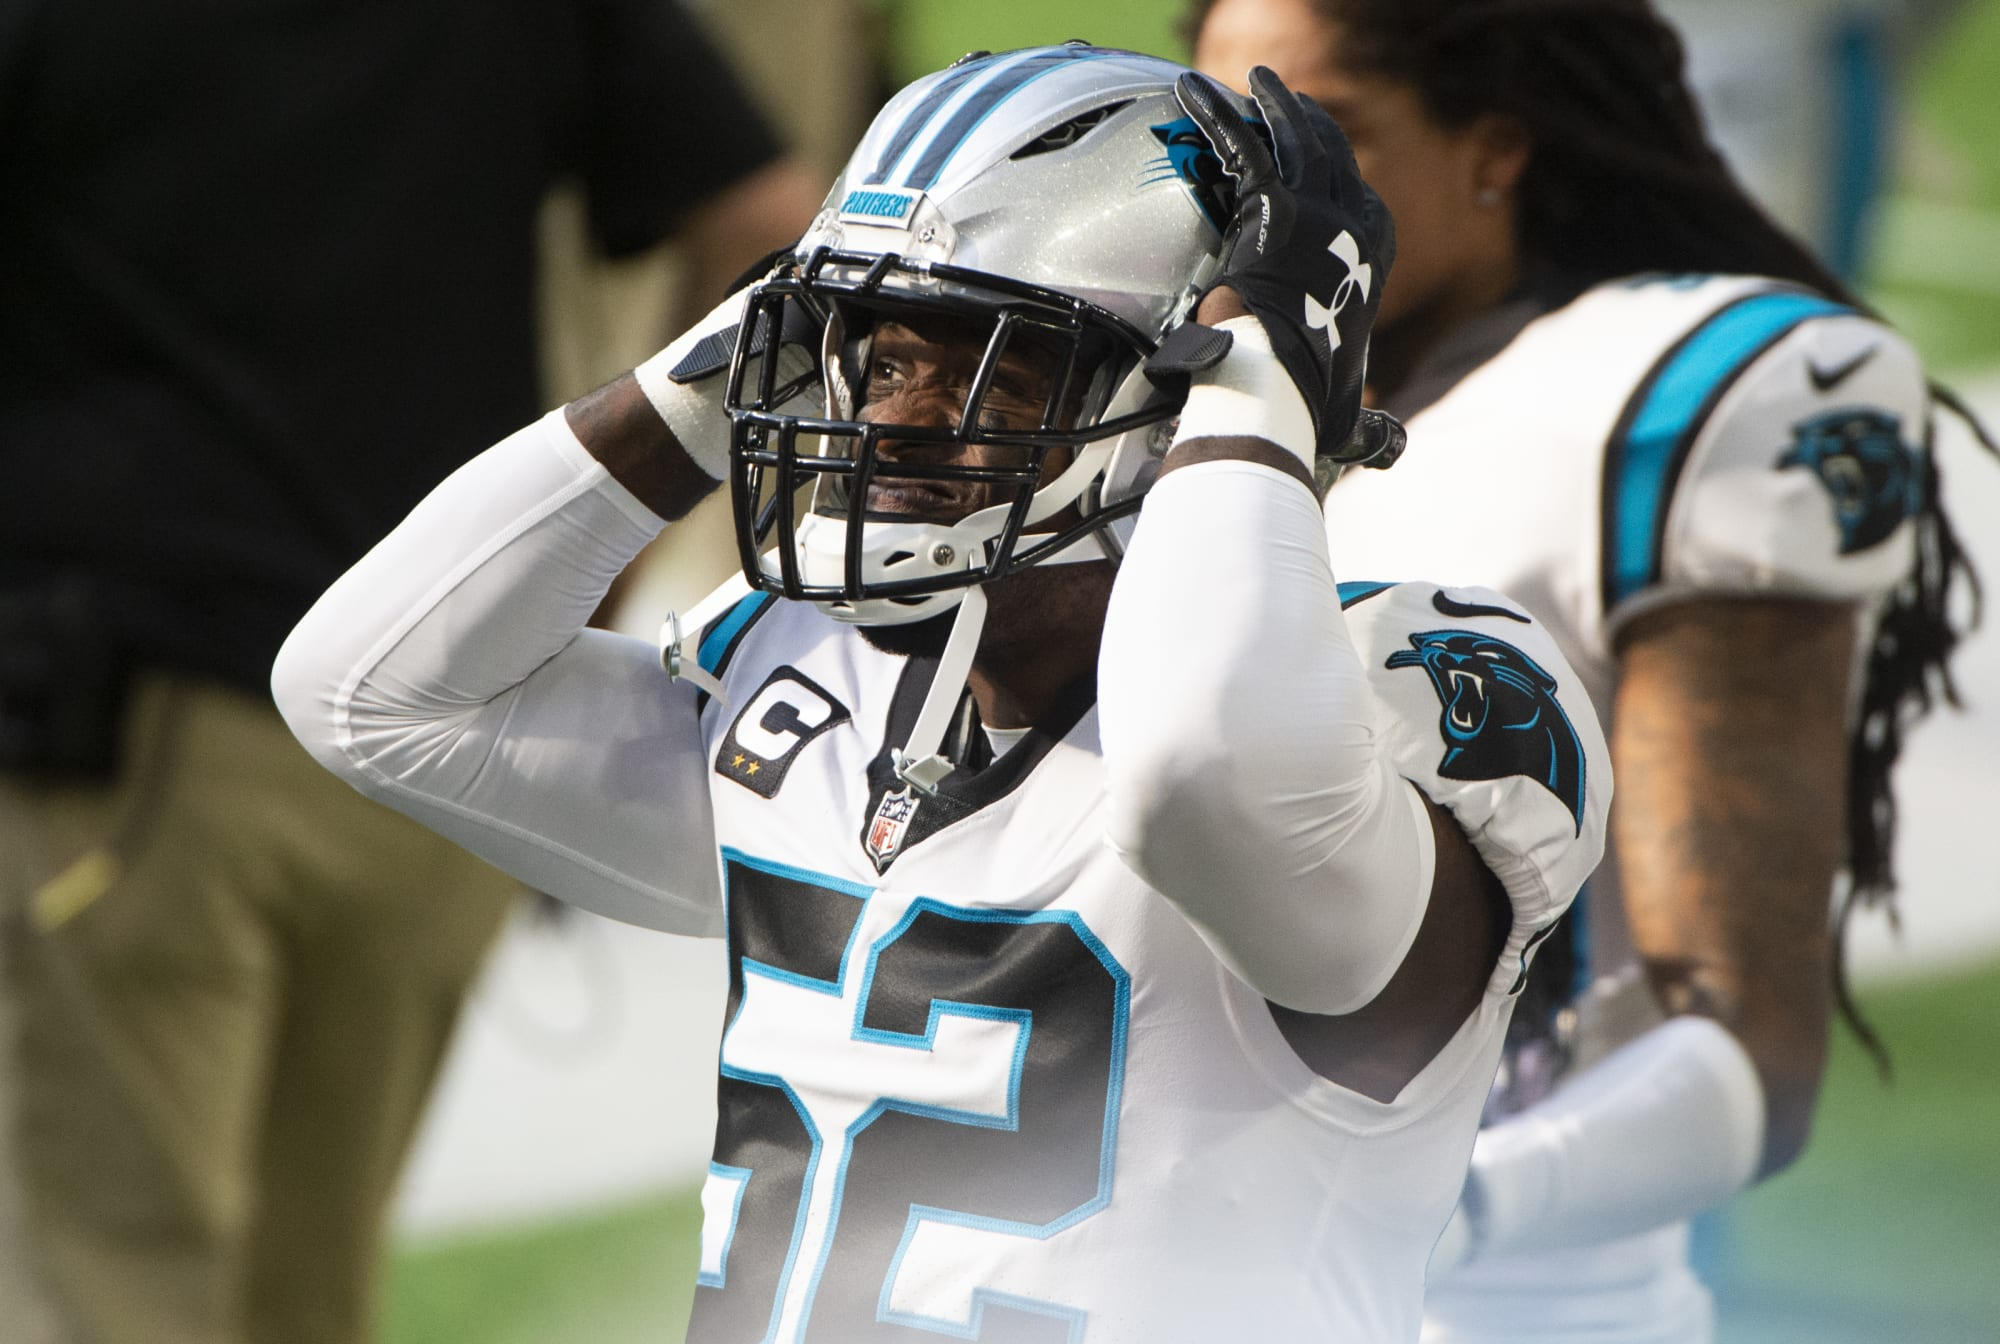 4 Panthers players who should be easy cuts this offseason